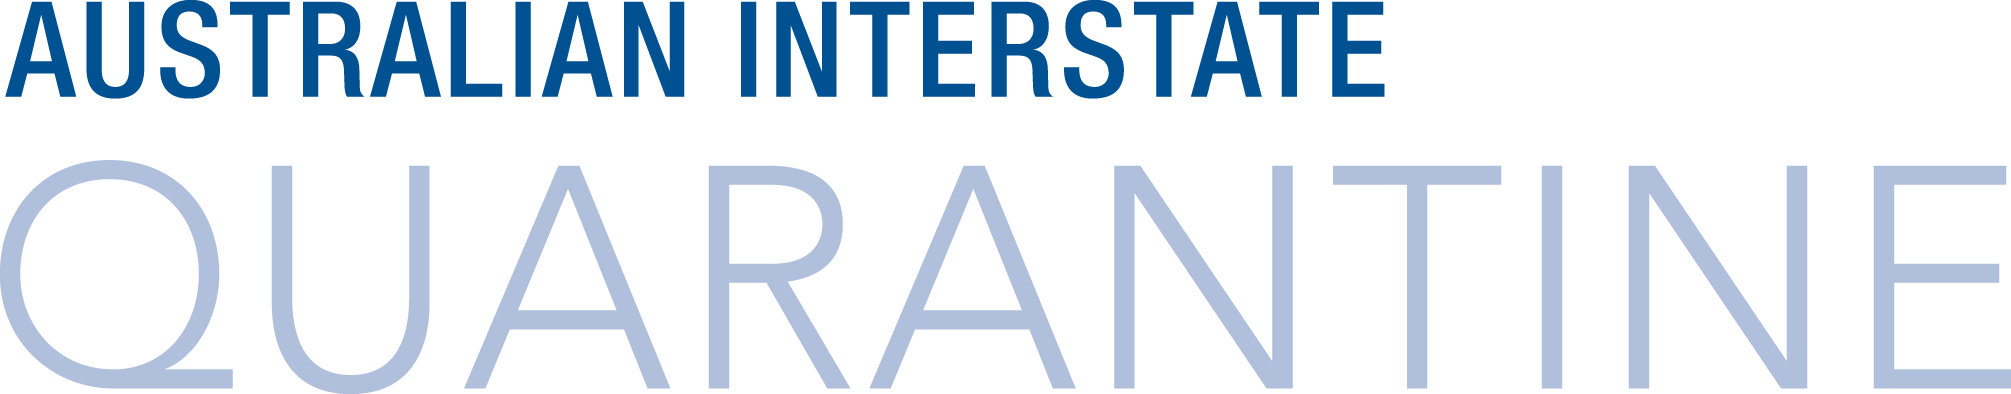 Australian Interstate Quarantine logo